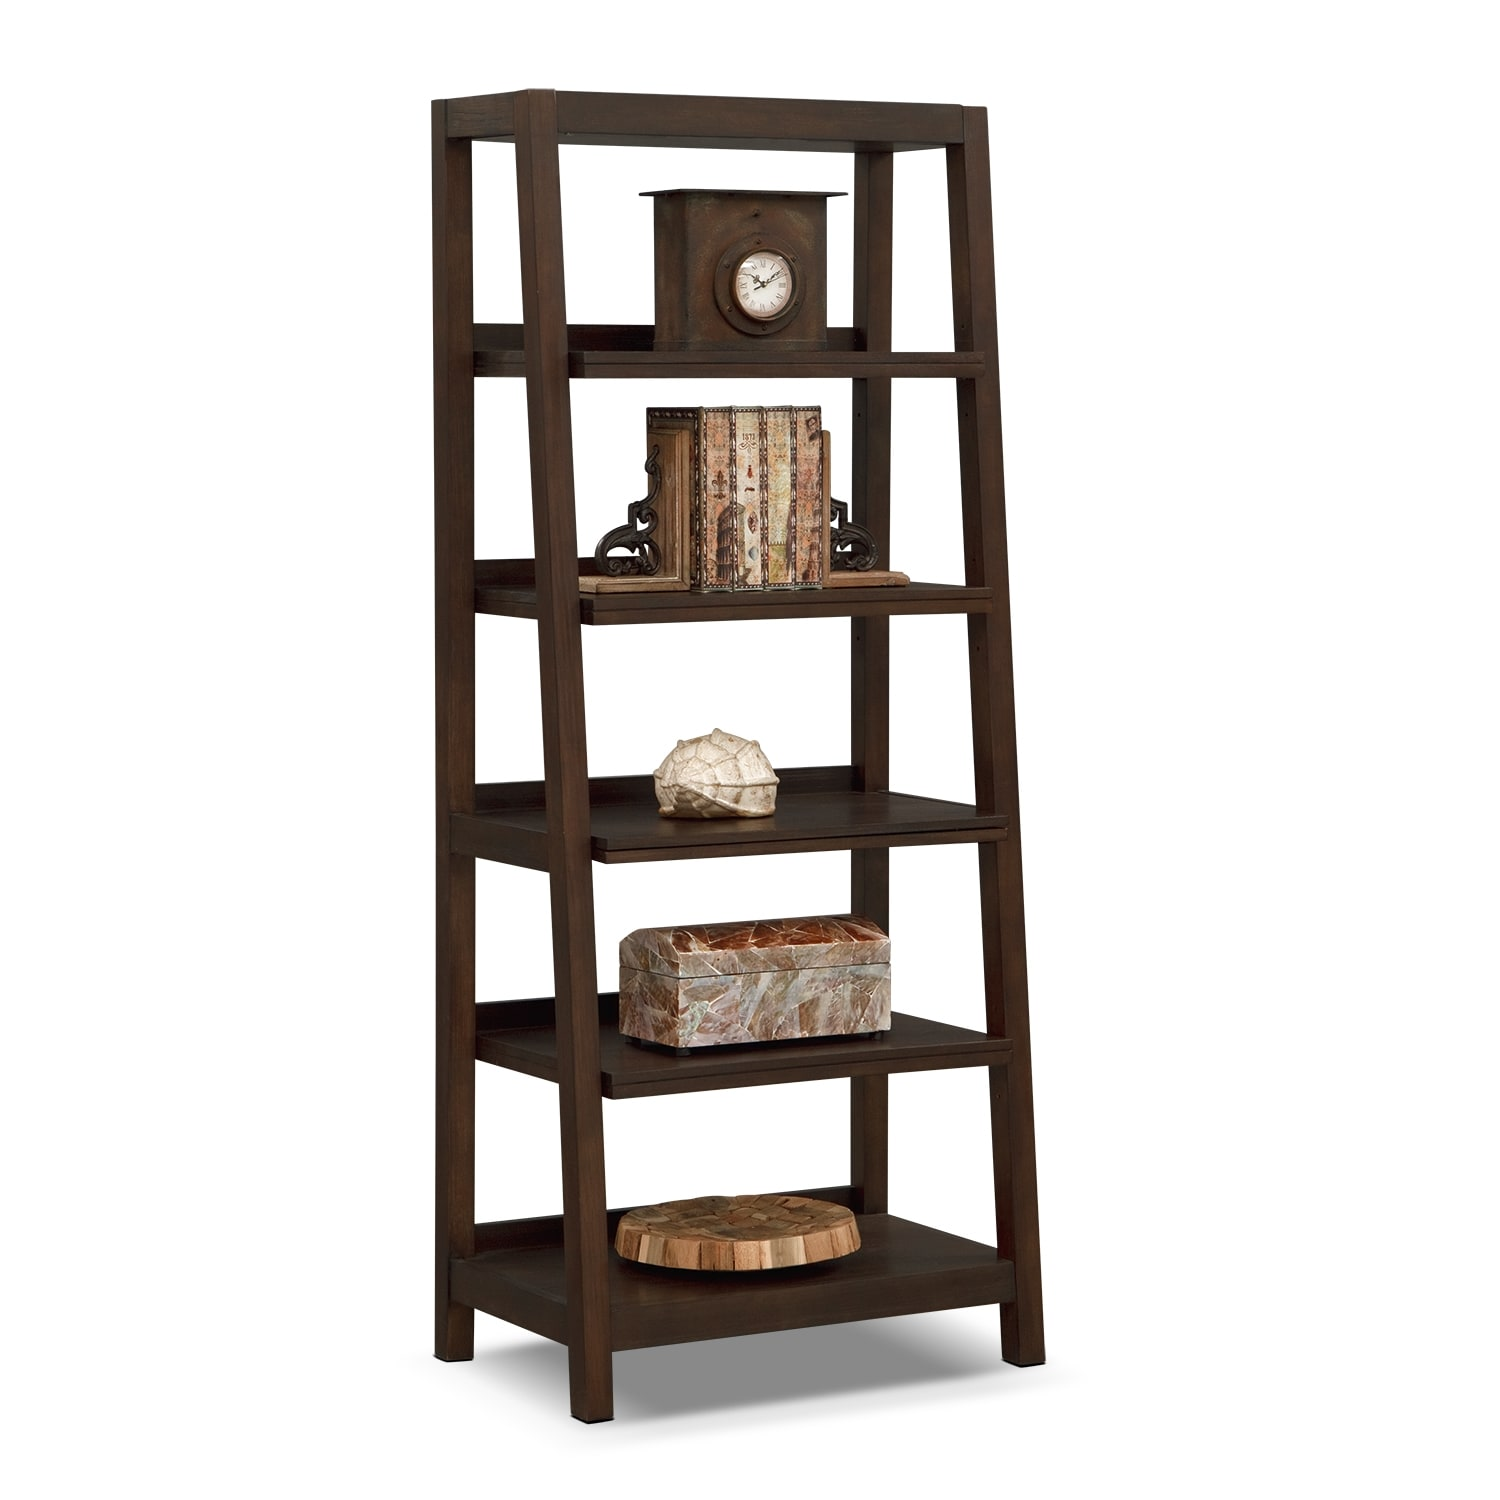 Camryn Bookcase w/ Pull Out Shelves